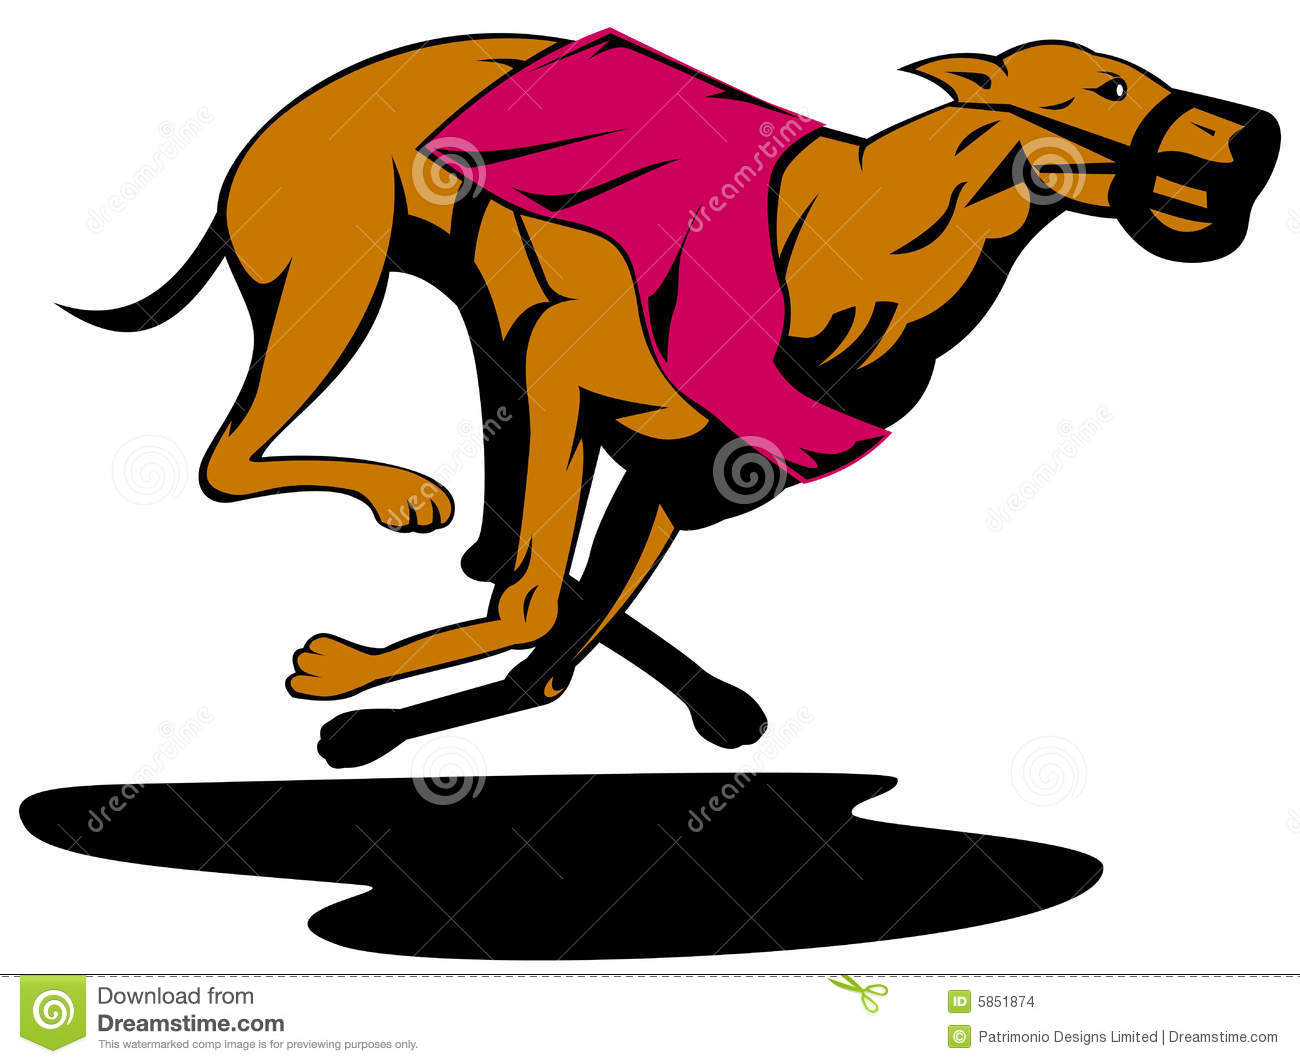 Todd Clipart 20 Fee Cliparts Download Imagenes: Greyhound Racing Stock Vector. Image Of Racing, Vector